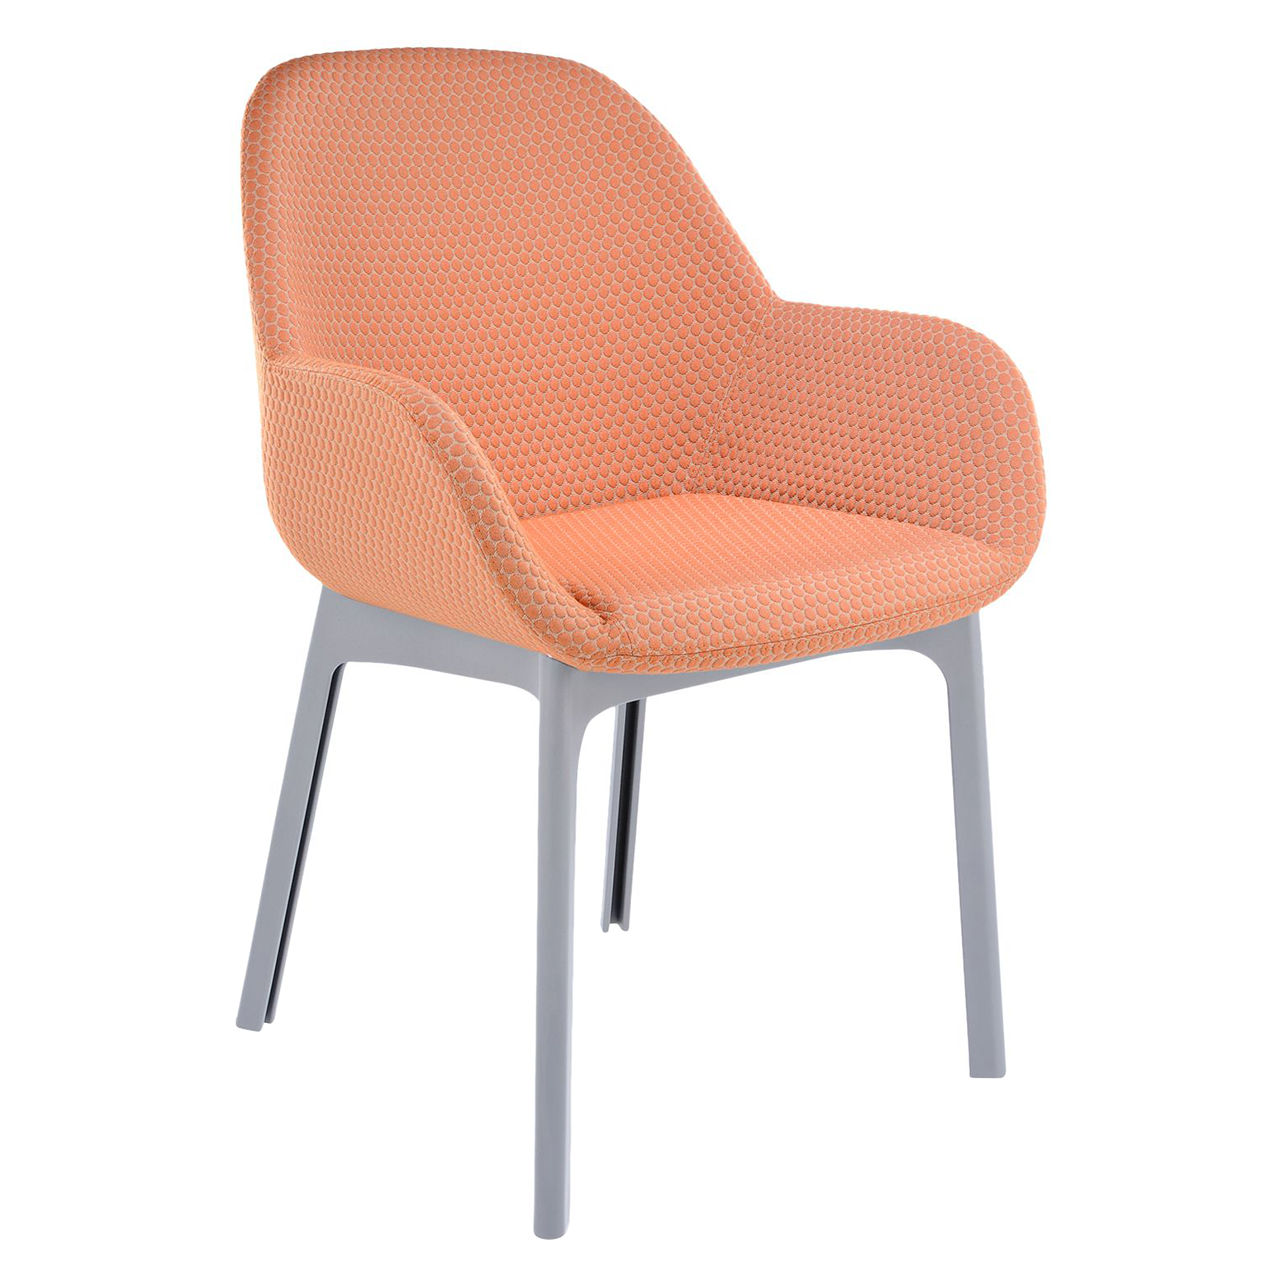 Clap Melange Chair in Gray and Orange by Kartell